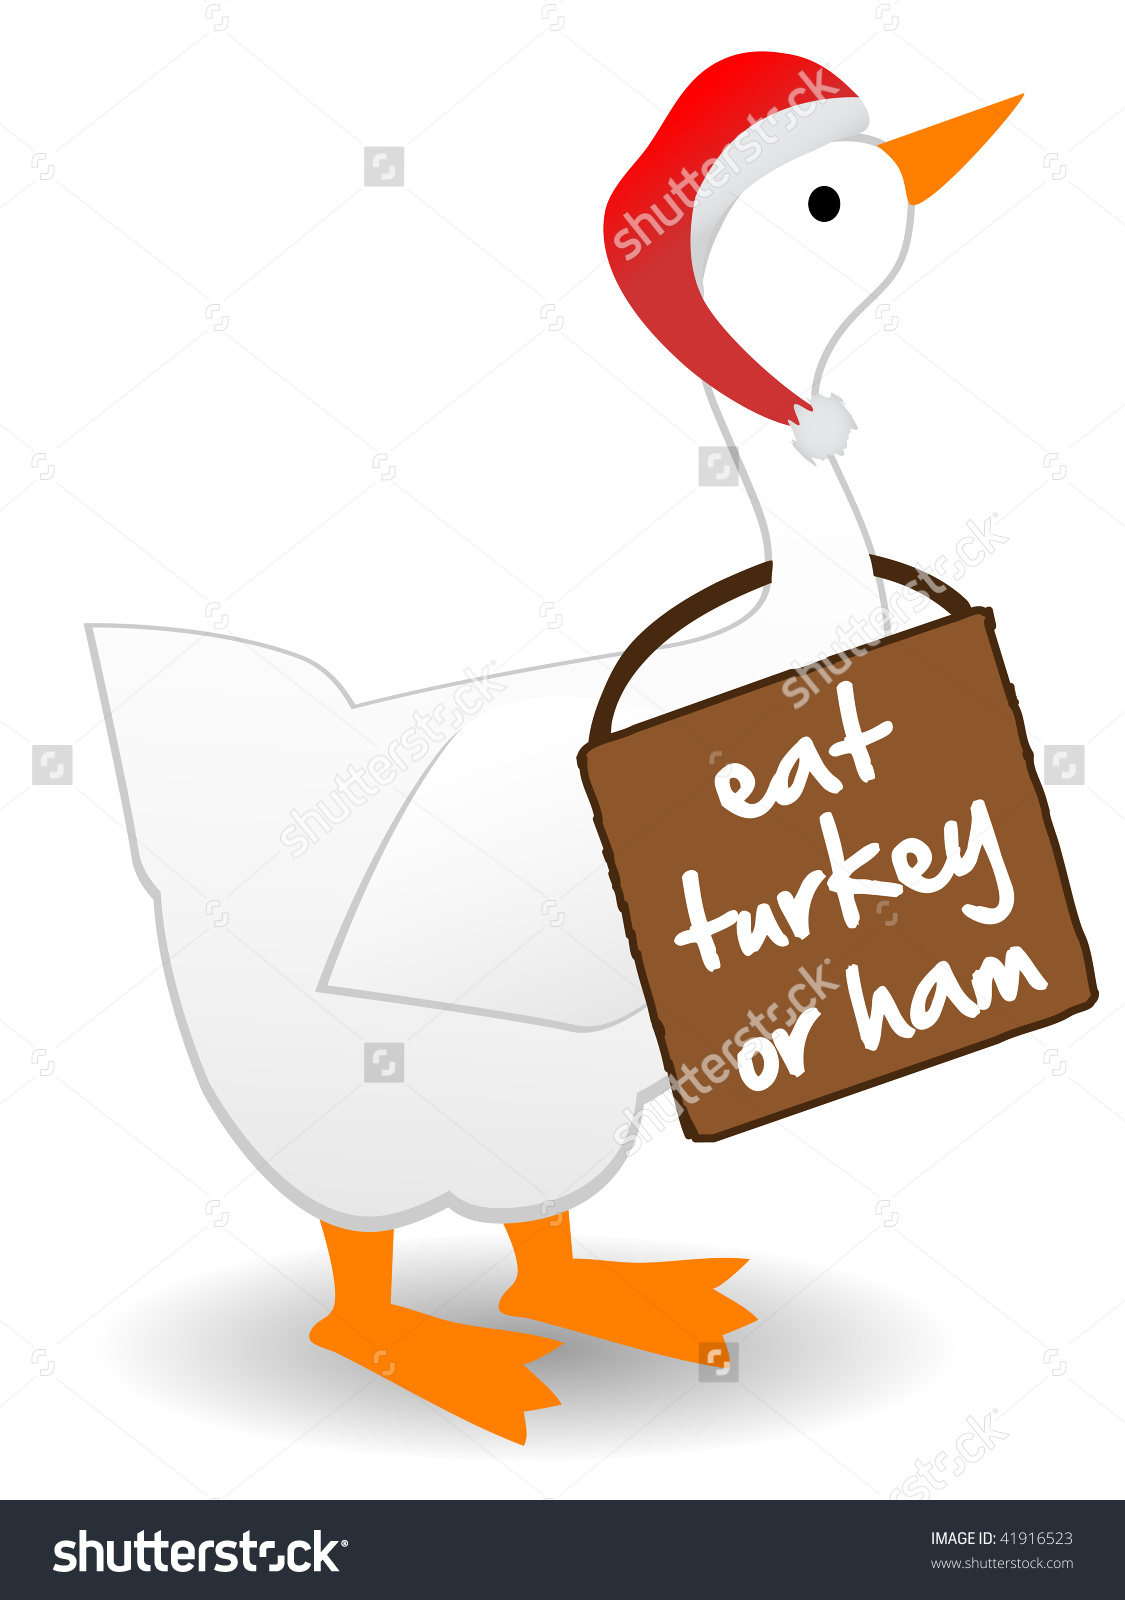 Christmas Goose Wearing Eat Turkey Sign Stock Vector 41916523.